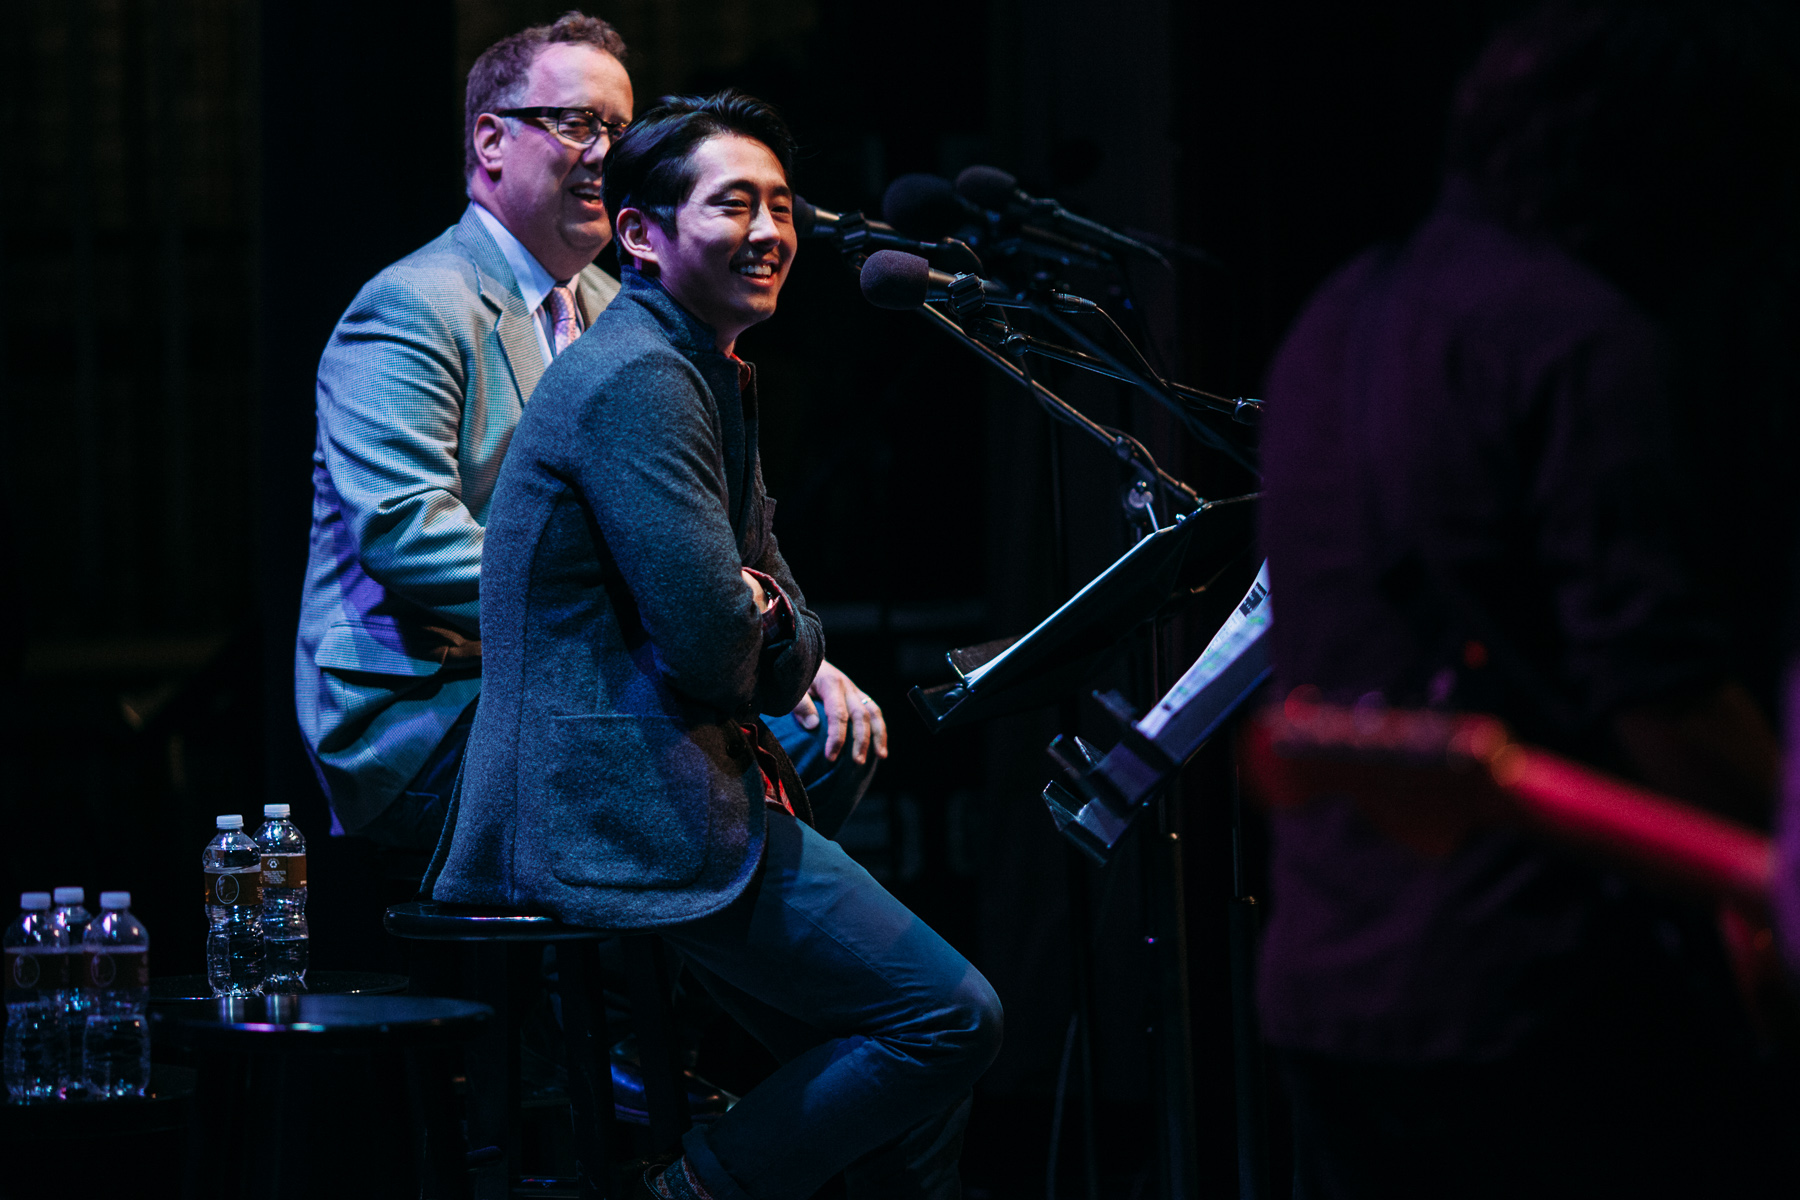 Motion_City_Soundtrack_And_Steven_Yeun_Perform_On_Wits_050.JPG